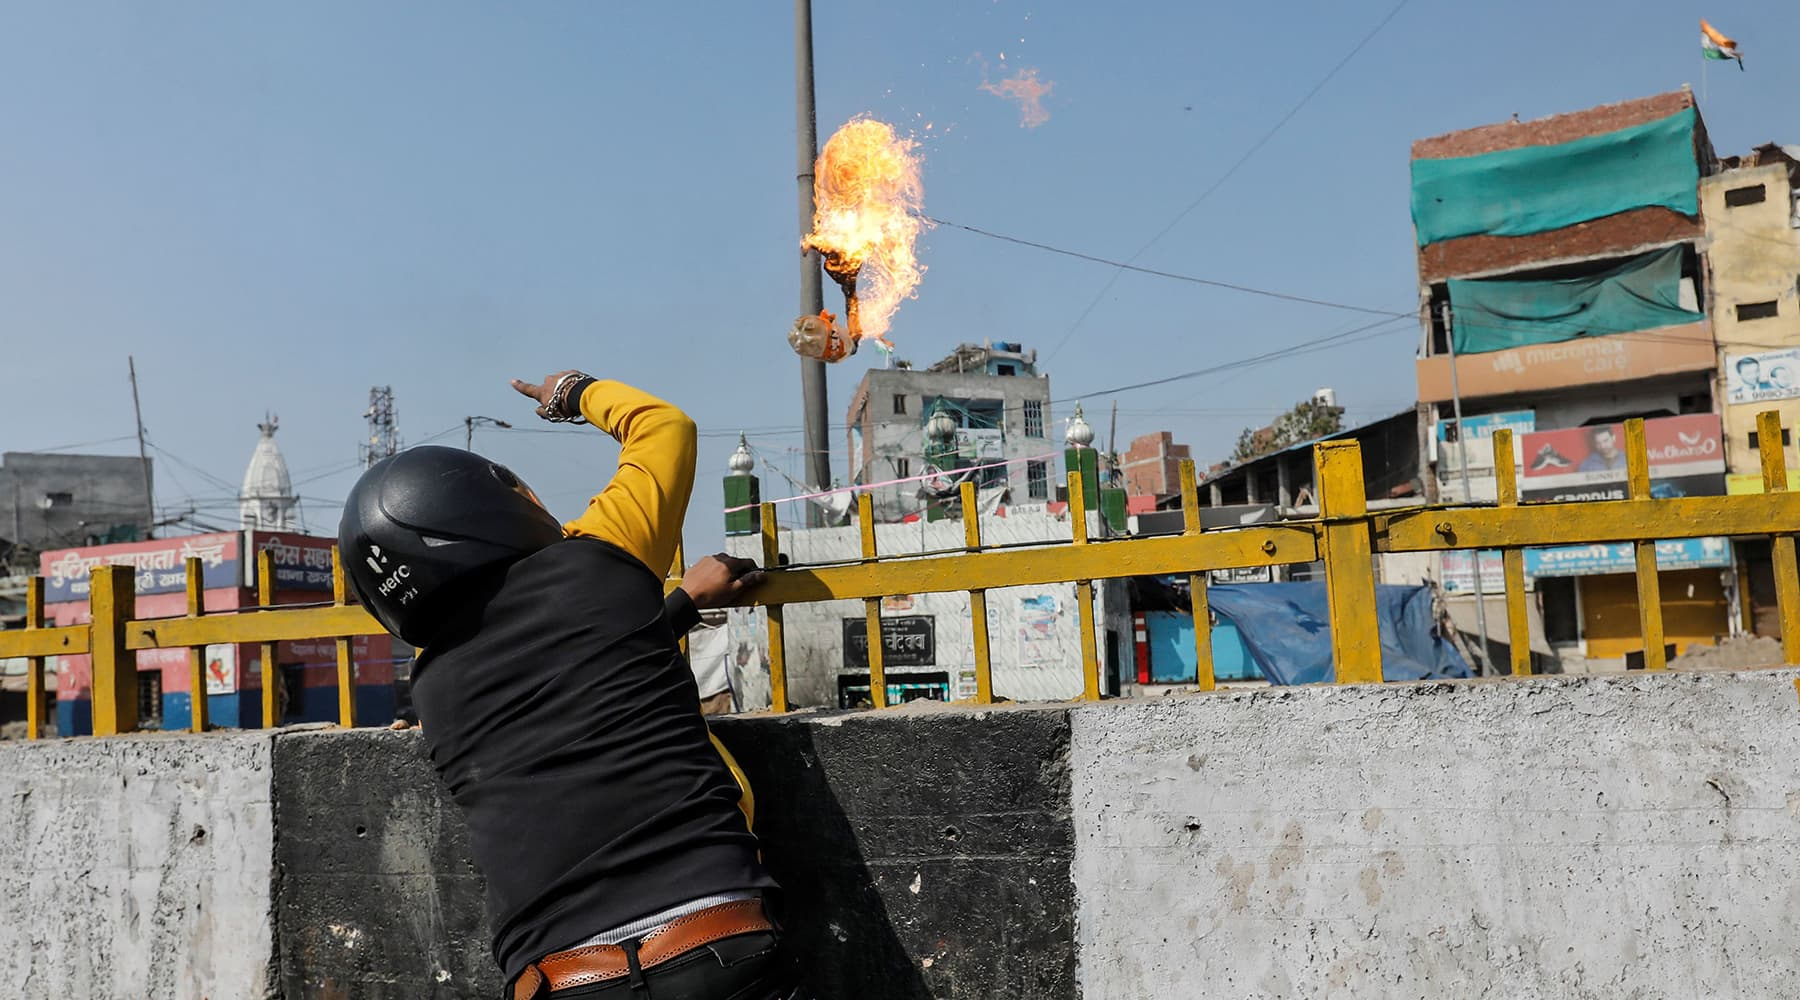 A man supporting the new citizenship law throws a petrol bomb at a Muslim shrine during a clash with those opposing the law in New Delhi India on Monday. — Reuters